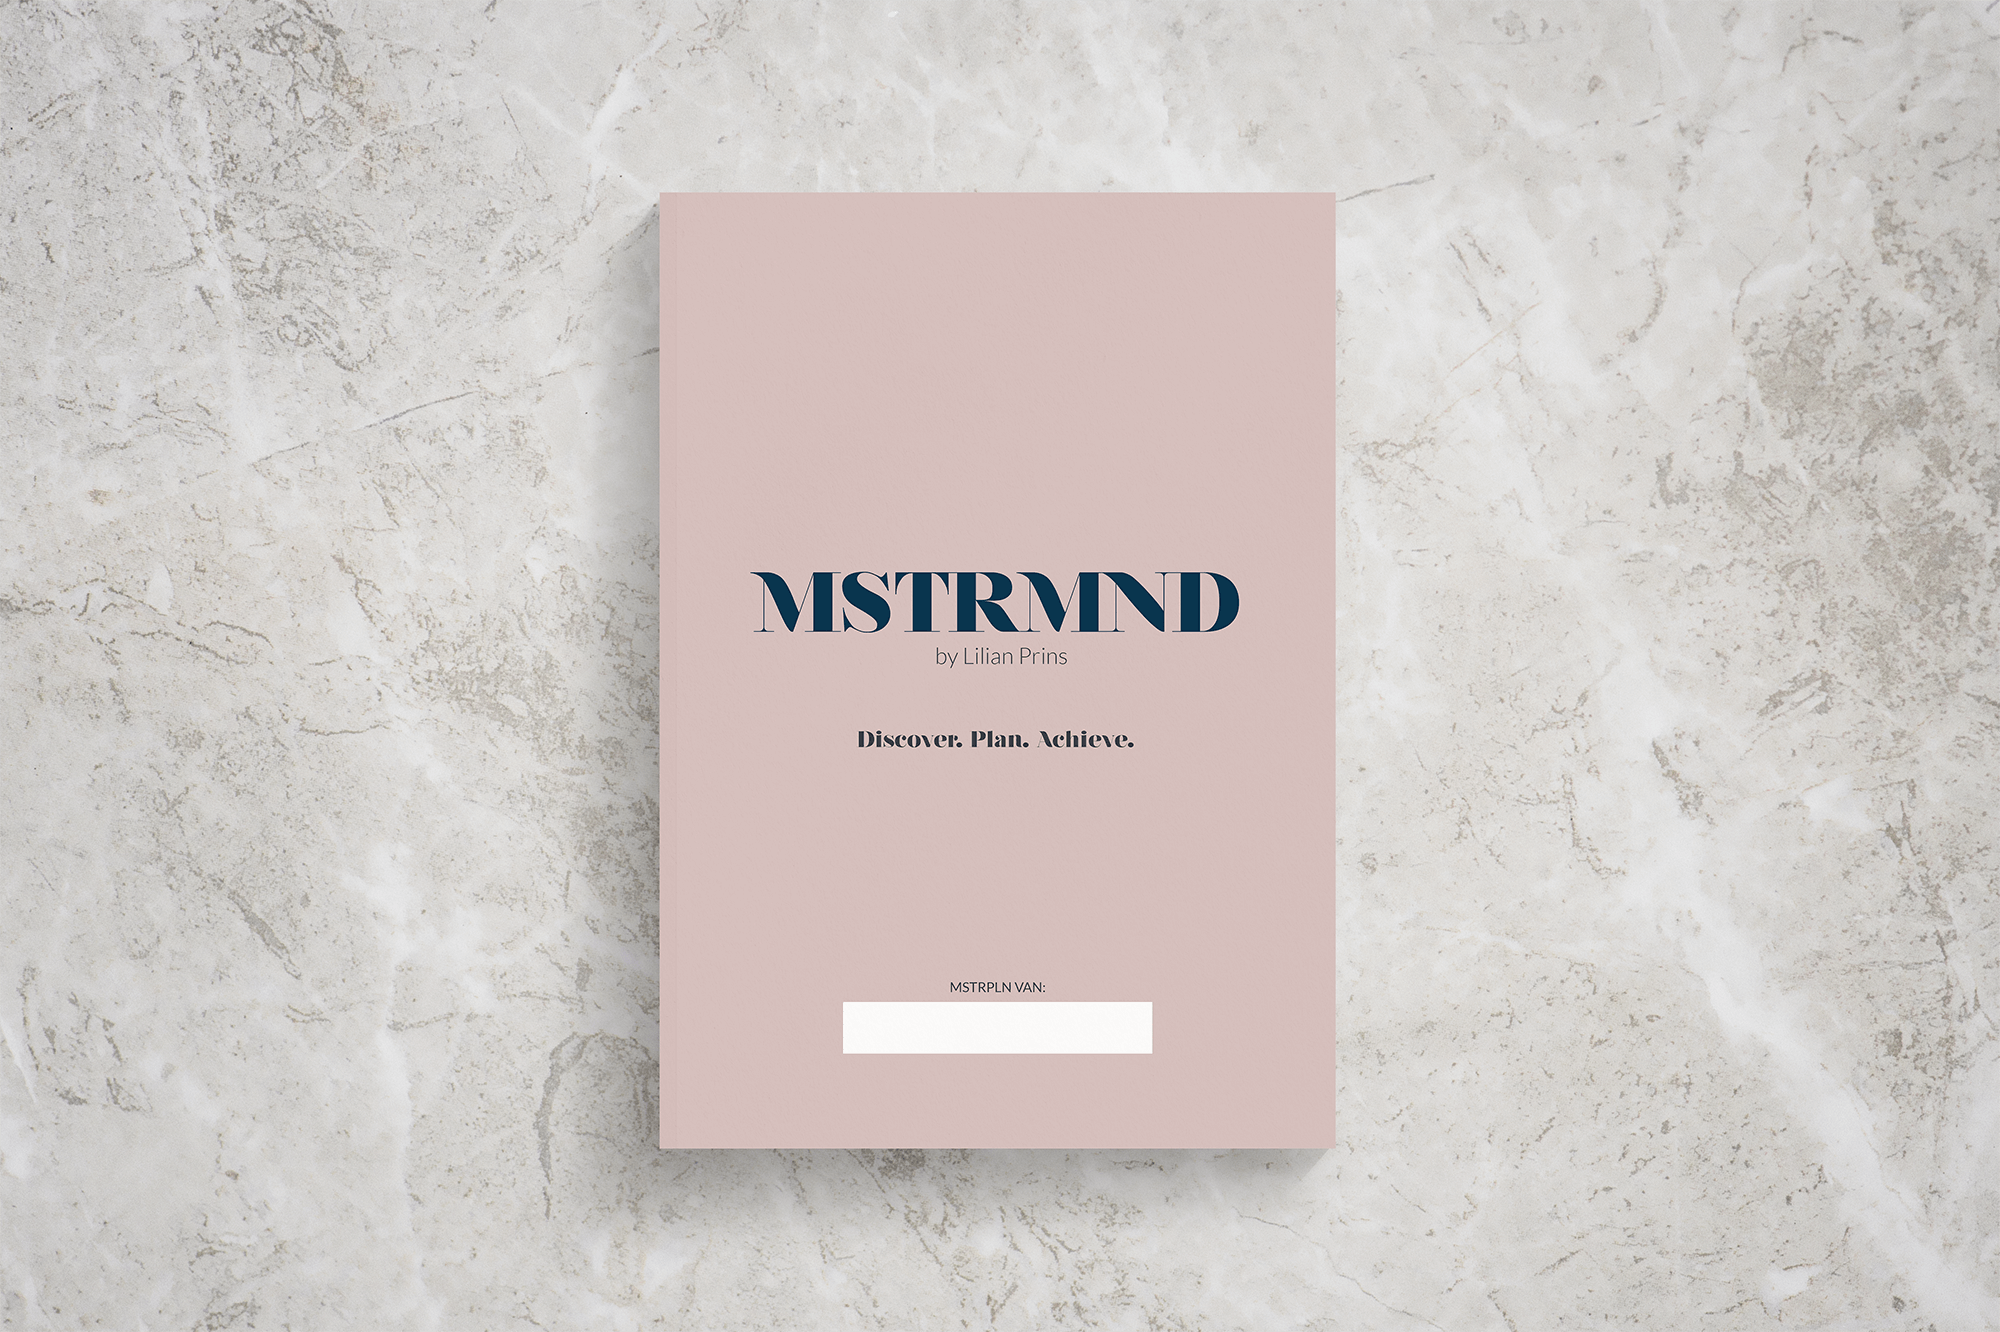 MSTRMND workbook | Fiona Gobbo Creative | Workbook for the mastermind workshop in Amersfoort